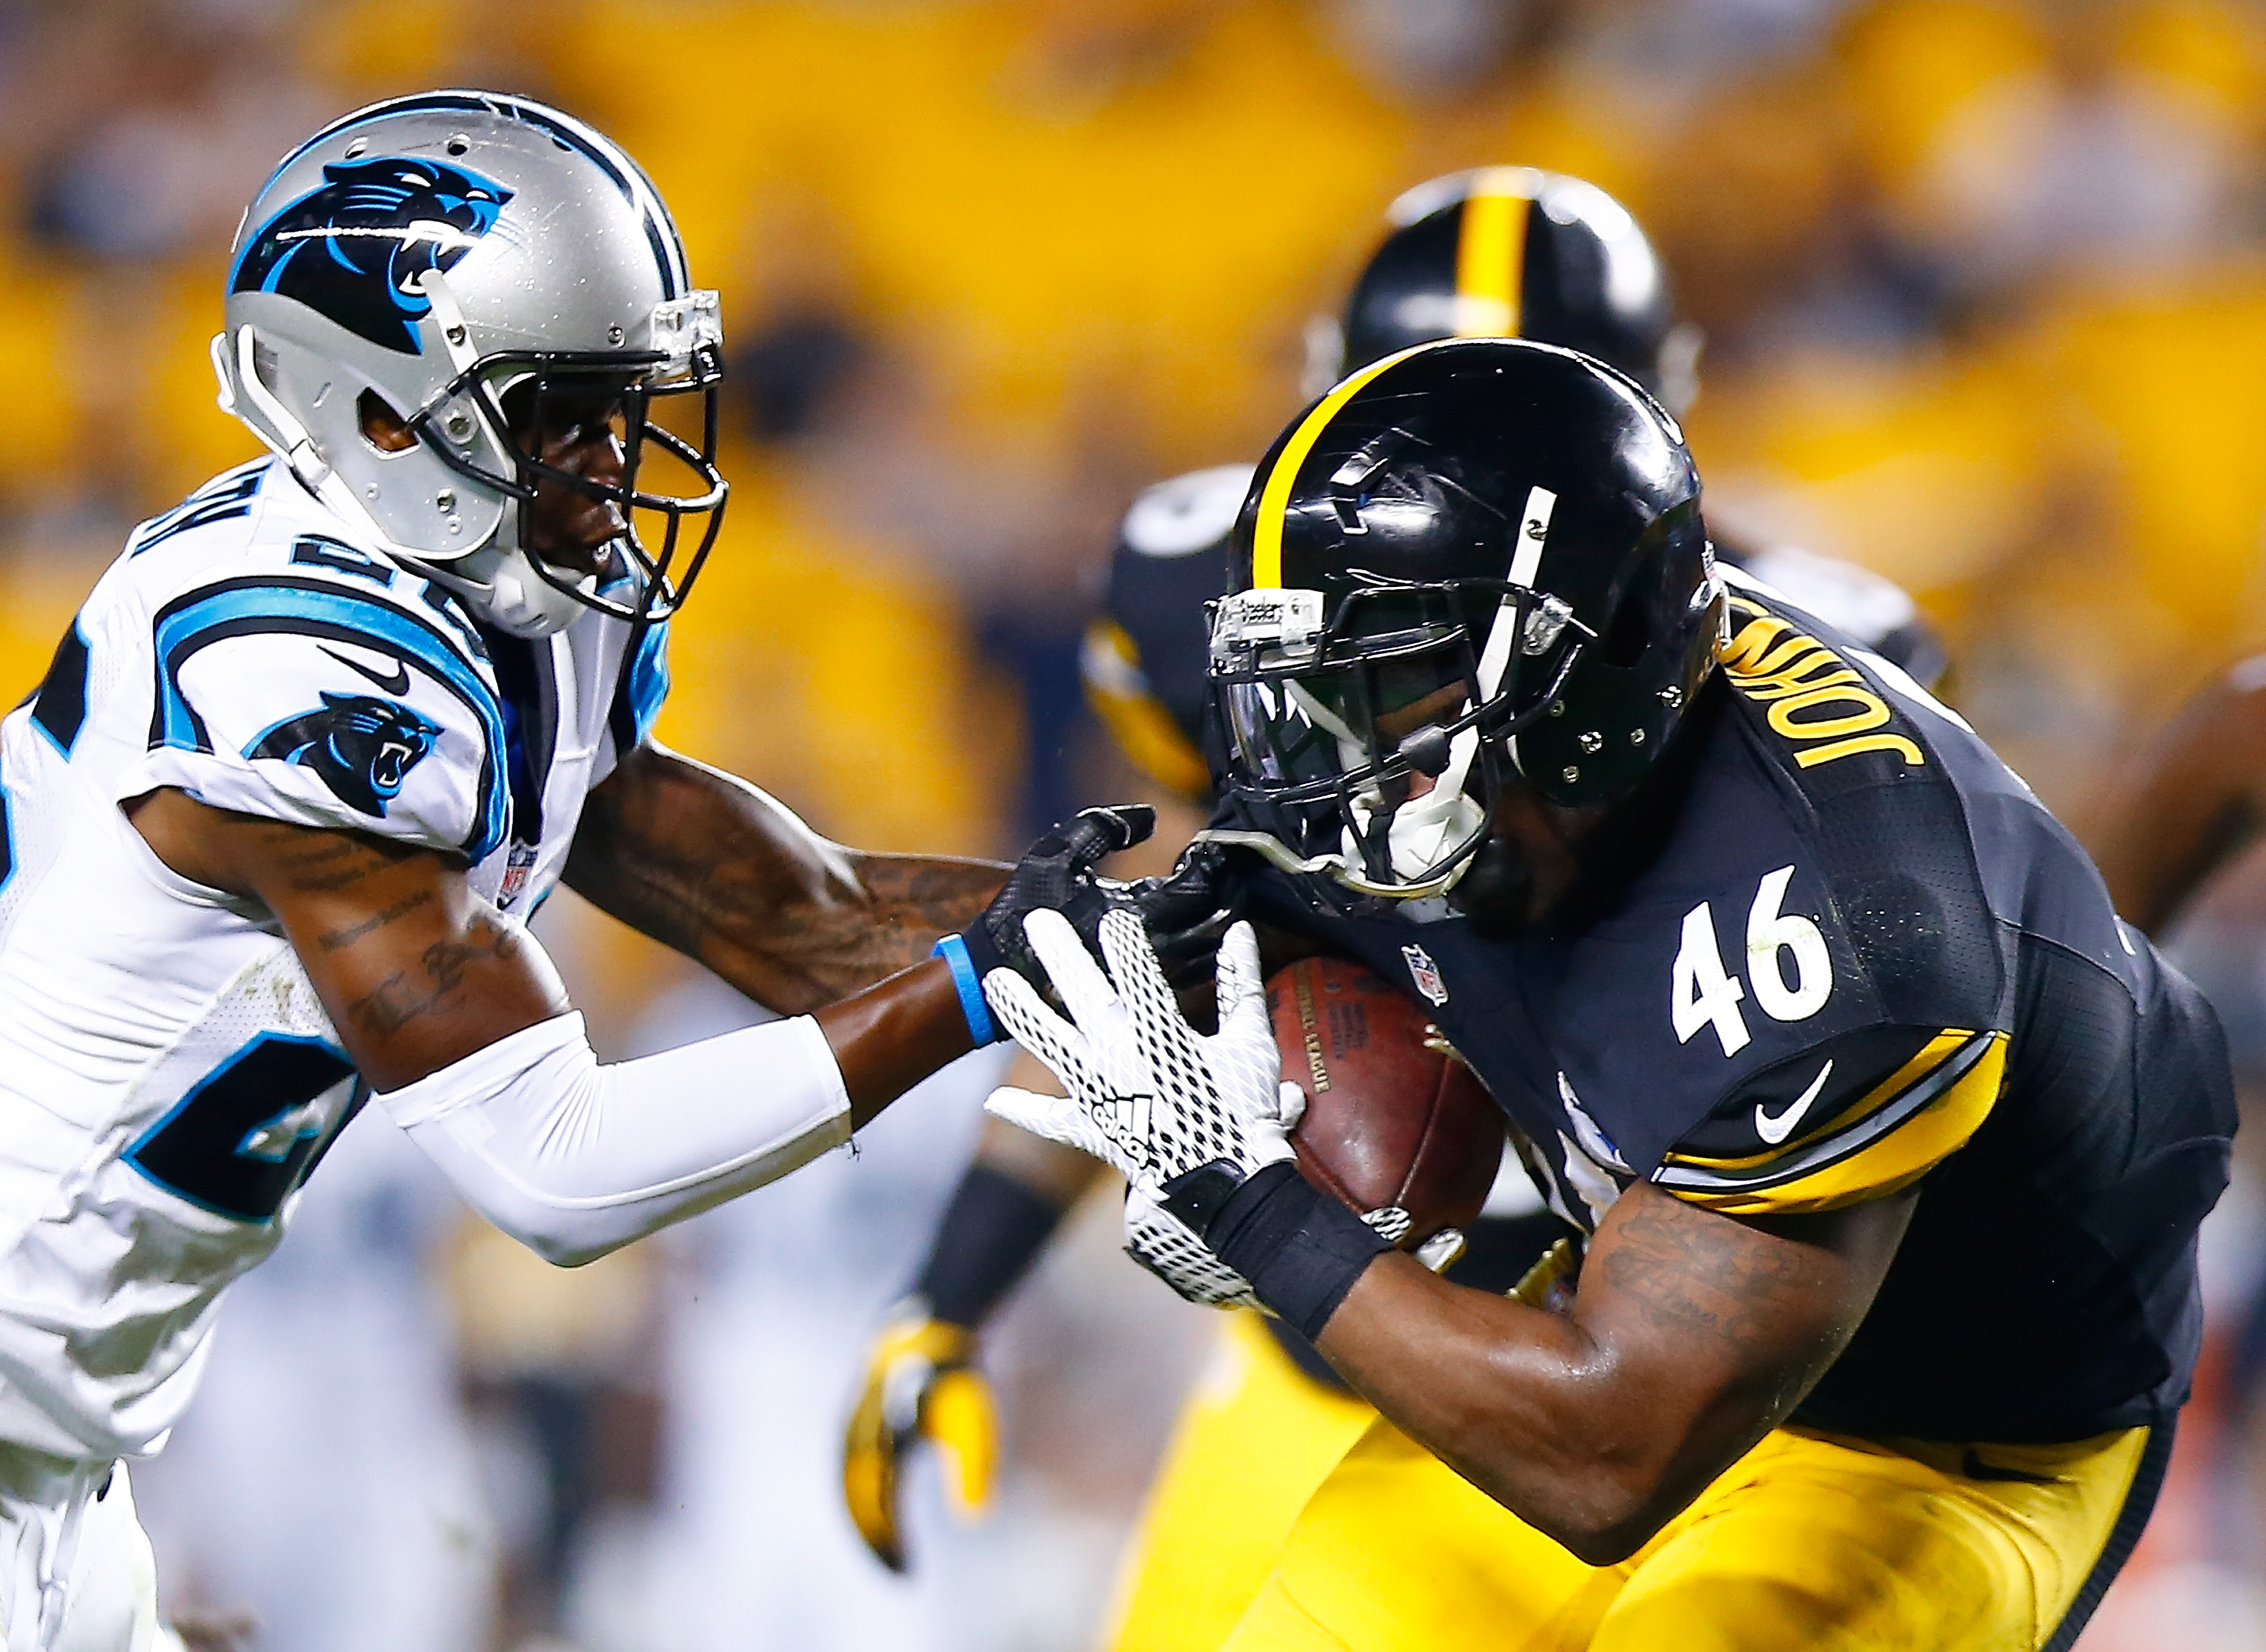 Will Johnson carrying the ball with the Steelers